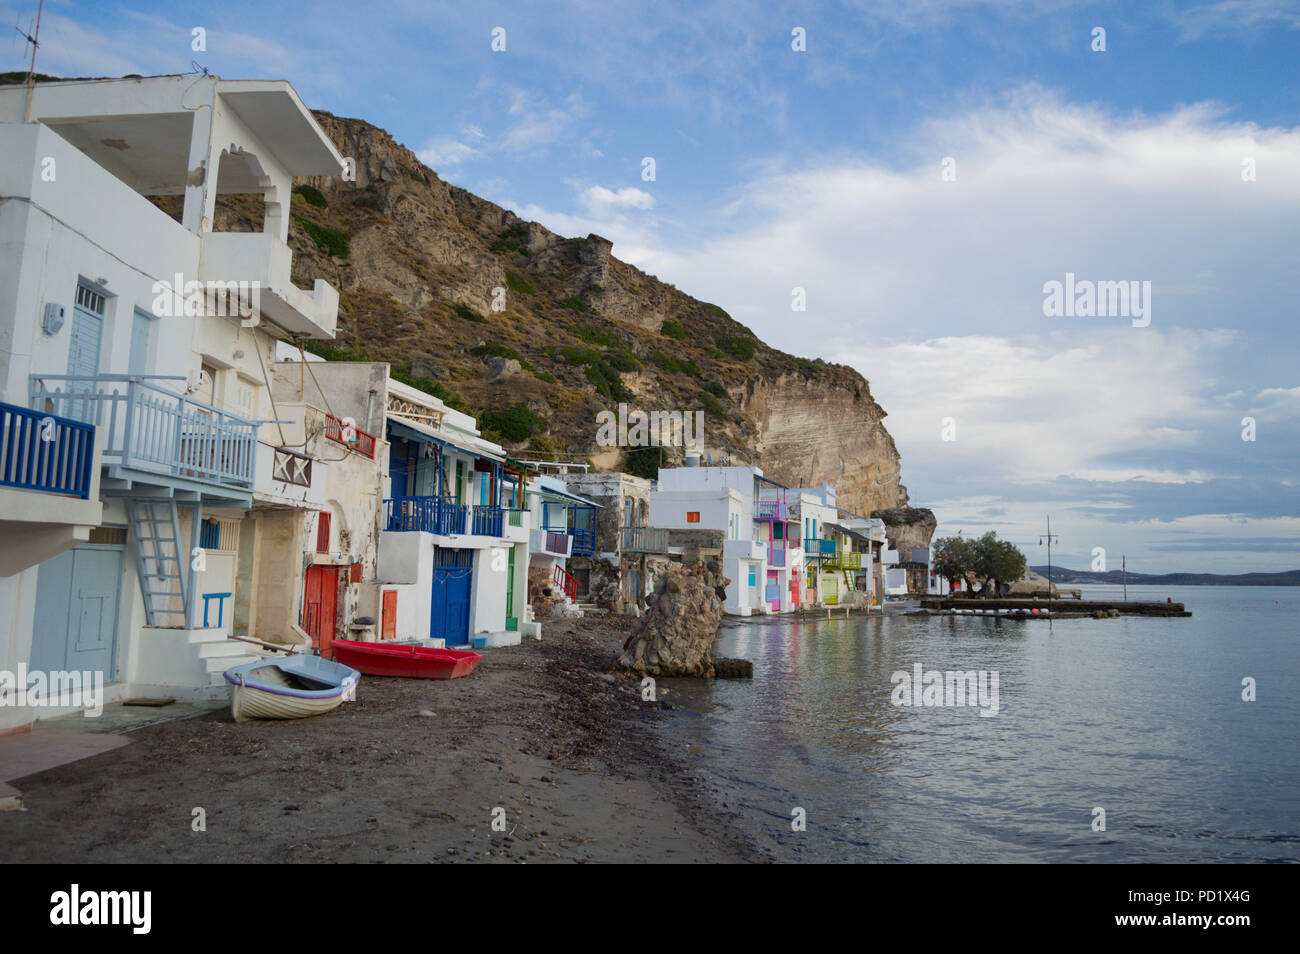 Traditional Colorful Greek Fishing Village Houses in Klima, Milos, Cyclades, Greece - Stock Image